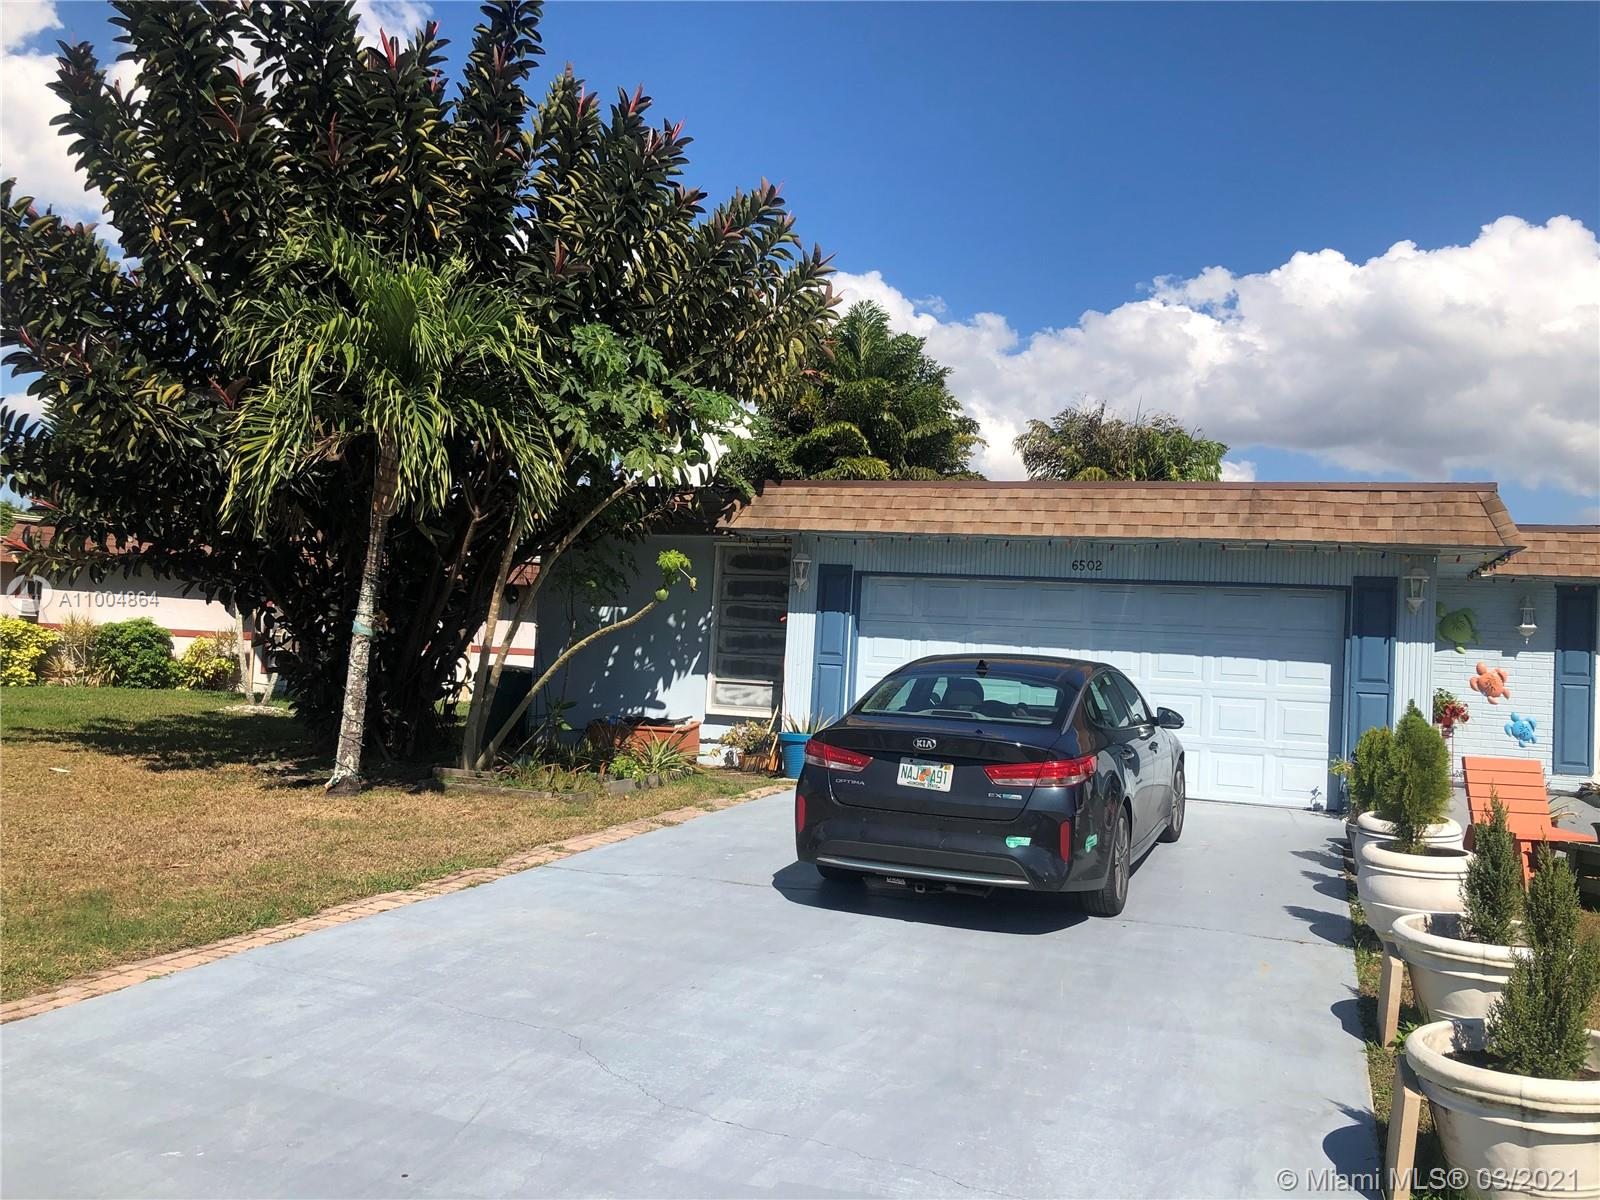 Nice house 2/2 for sale in an all-ages community. Association approval required. spacious living room. Nice kitchen with laundry room. Garage converted in the Third bedroom currently used as a den. Lush tropical backyard with pool and lake. Central ac. Hoa takes care of the lawn.